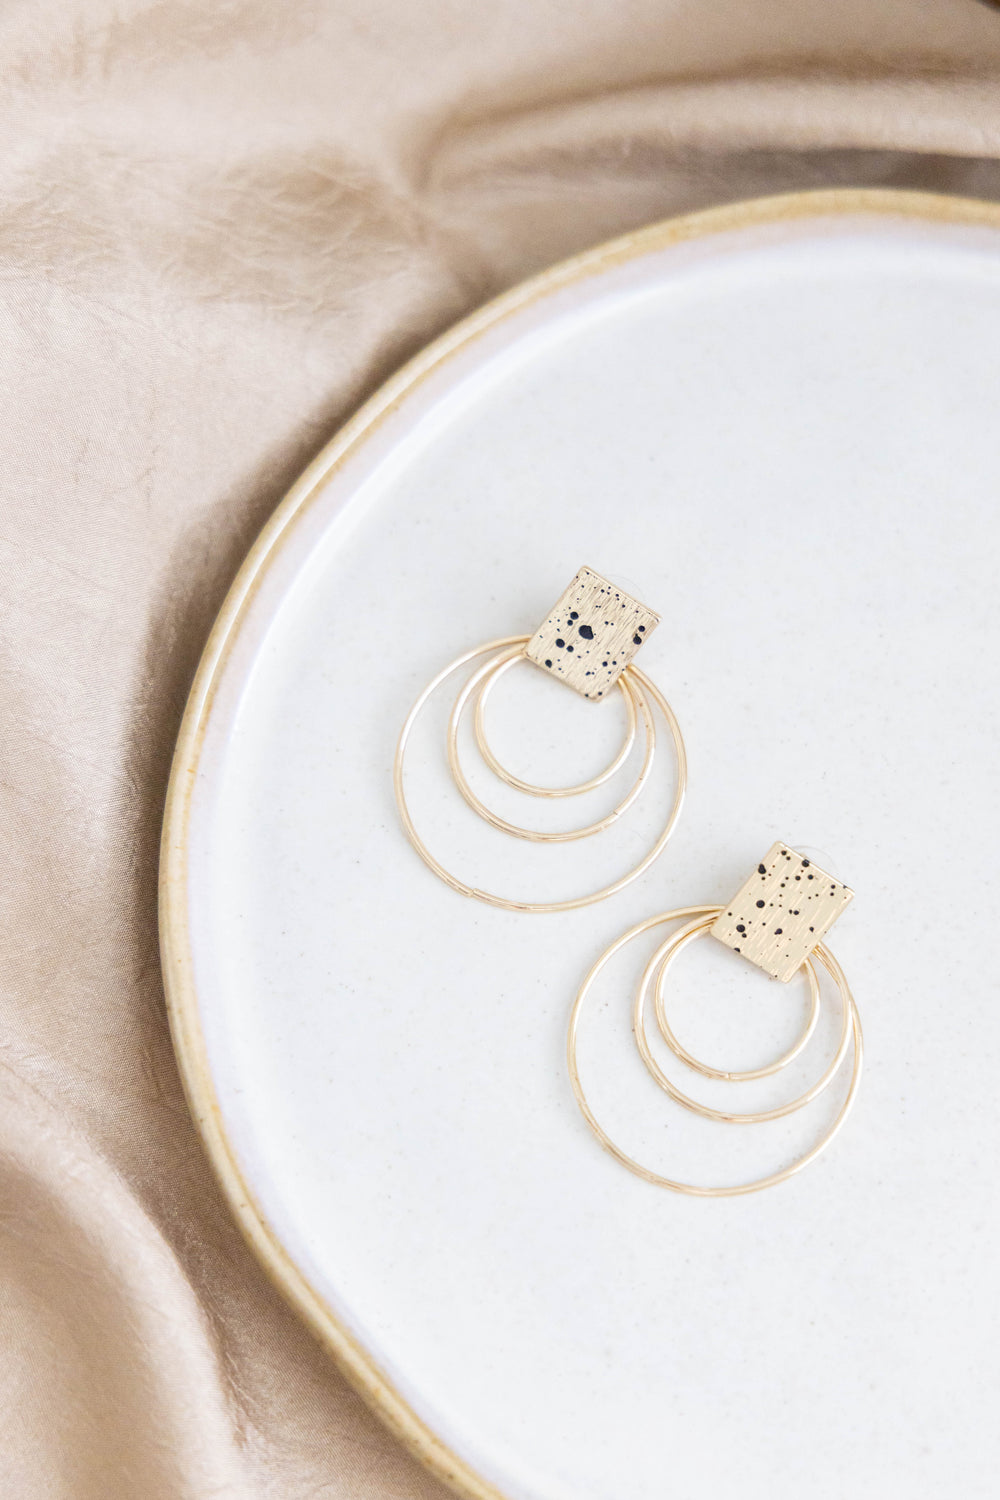 Gold, modern earrings with black spots